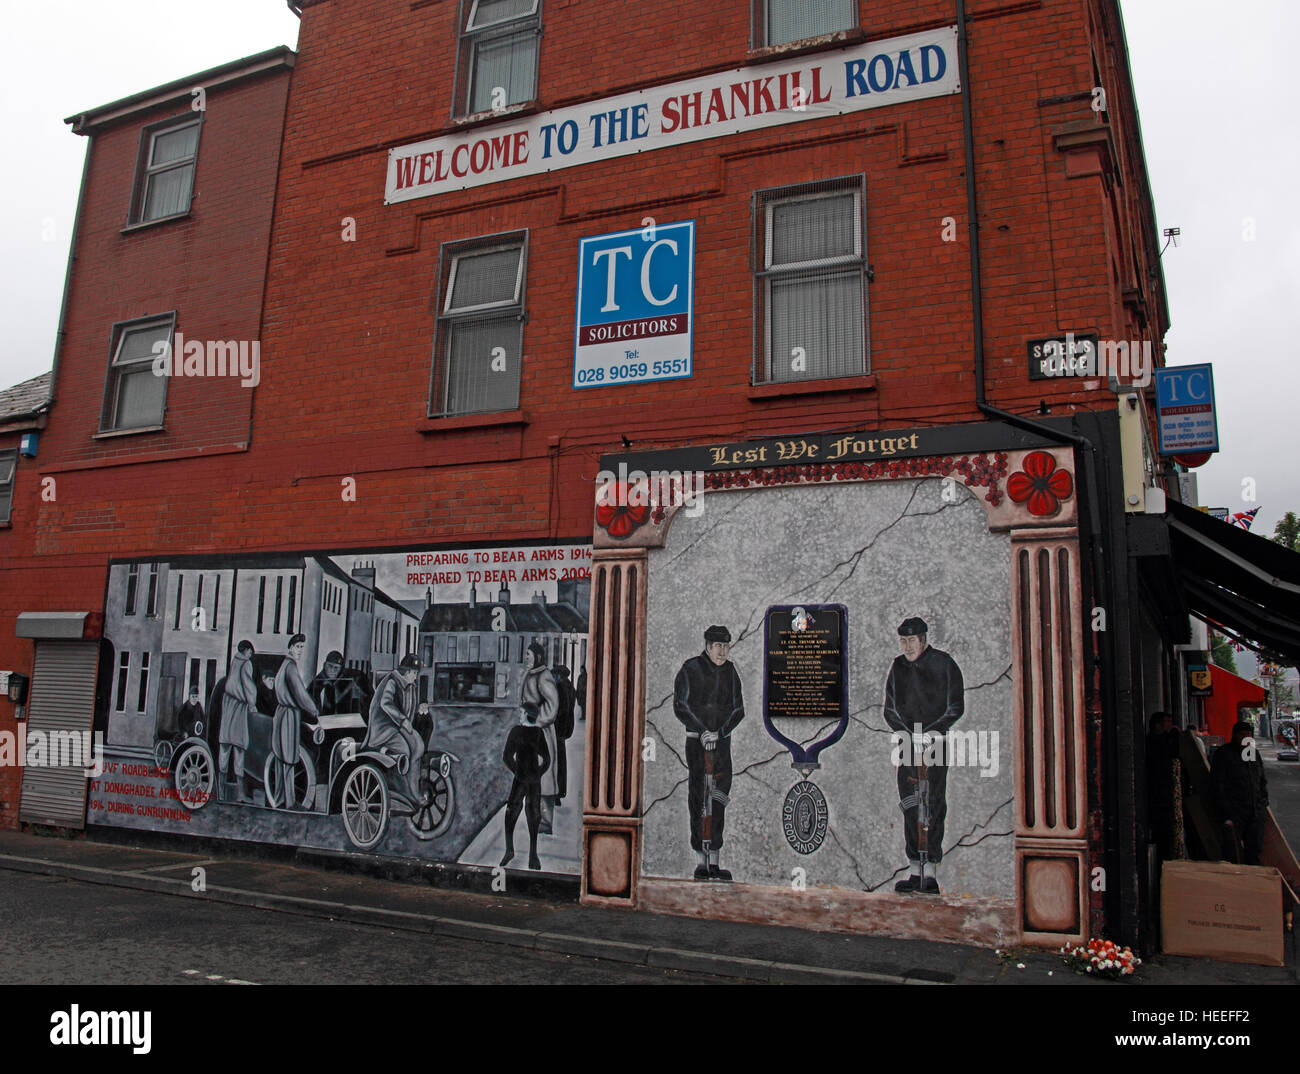 Mural,art,British,Union,wall,walls,gable end,gable,end,Northern,Irish,Republican,violence,para,military,paramilitary,fallen,Martyrs,martyr,street,rd,road,painting,painted,symbolism,Loyalist,culture,history,community,road,Spiers,pl,place,orange,GoTonySmith,@HotpixUK,Tony,Smith,UK,GB,Great,Britain,United,Kingdom,Irish,British,Ireland,problem,with,problem with,issue with,NI,Northern,Northern Ireland,Belfast,City,Centre,Art,Artists,the,troubles,The Troubles,Good Friday Agreement,Peace,honour,painting,wall,walls,tribute,republicanism,Fight,Justice,West,Beal,feirste,martyrs,social,tour,tourism,tourists,urban,six,counties,6,backdrop,county,Antrim,Shankill,Rd,Road,Royal,Royalist,Loyalist,Belfast streets,Buy Pictures of,Buy Images Of,Images of,Stock Images,Tony Smith,United Kingdom,Great Britain,British Isles